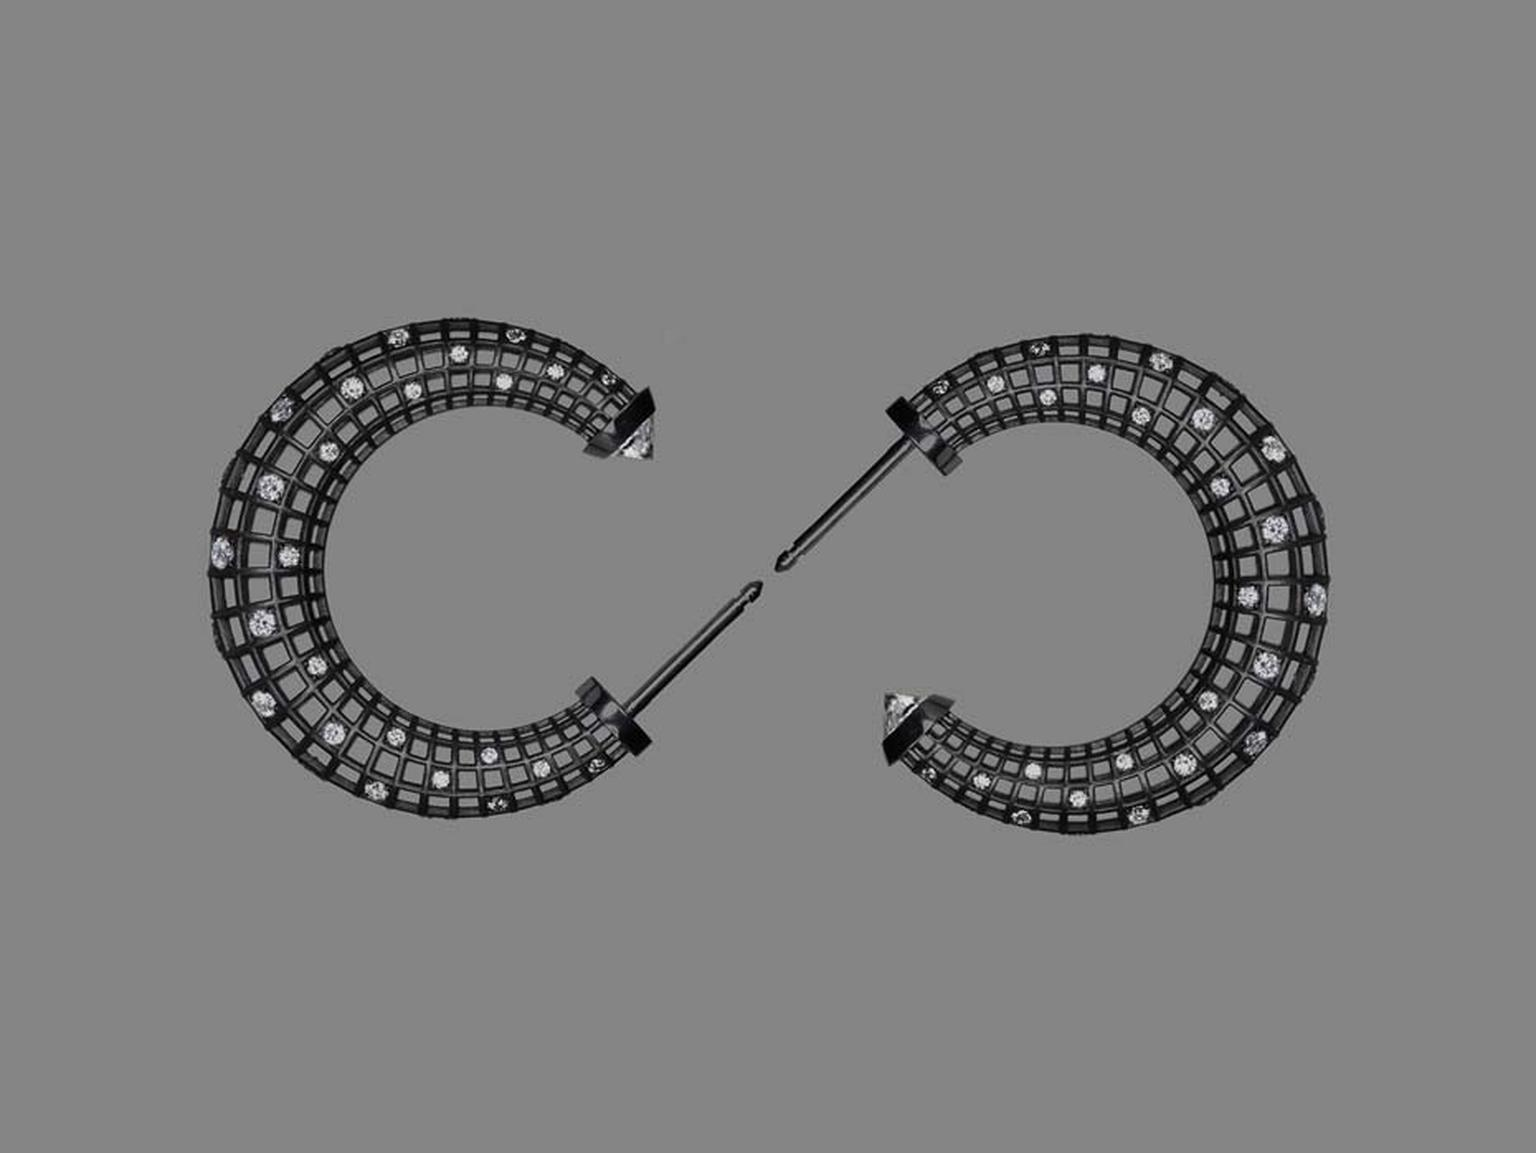 Roule & Co Star Dust Crescent hoop earrings in blackened gold with white diamonds and white sapphires.